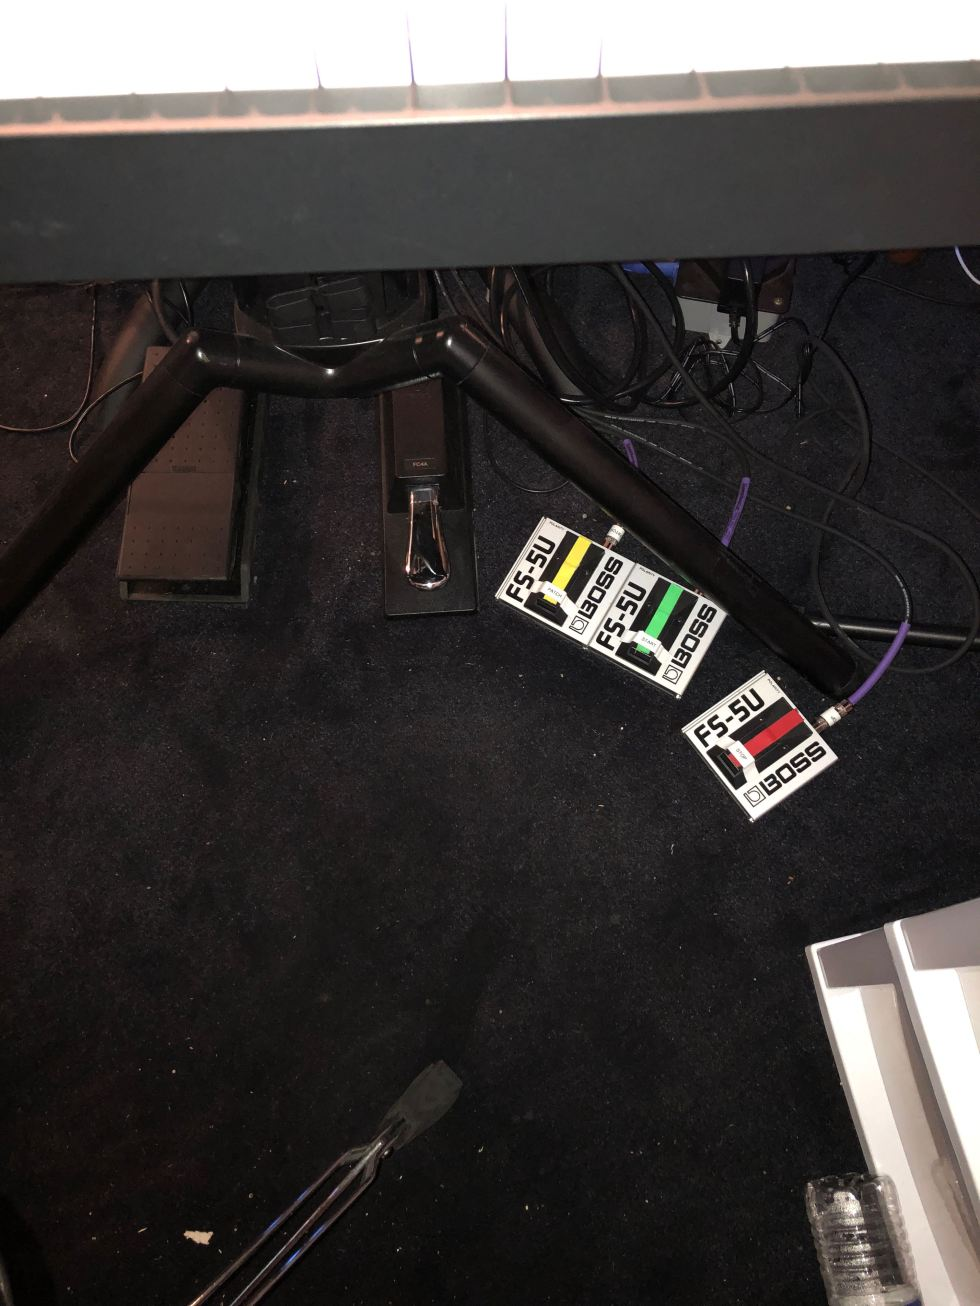 K1 Footswitches for Controlling MainStage